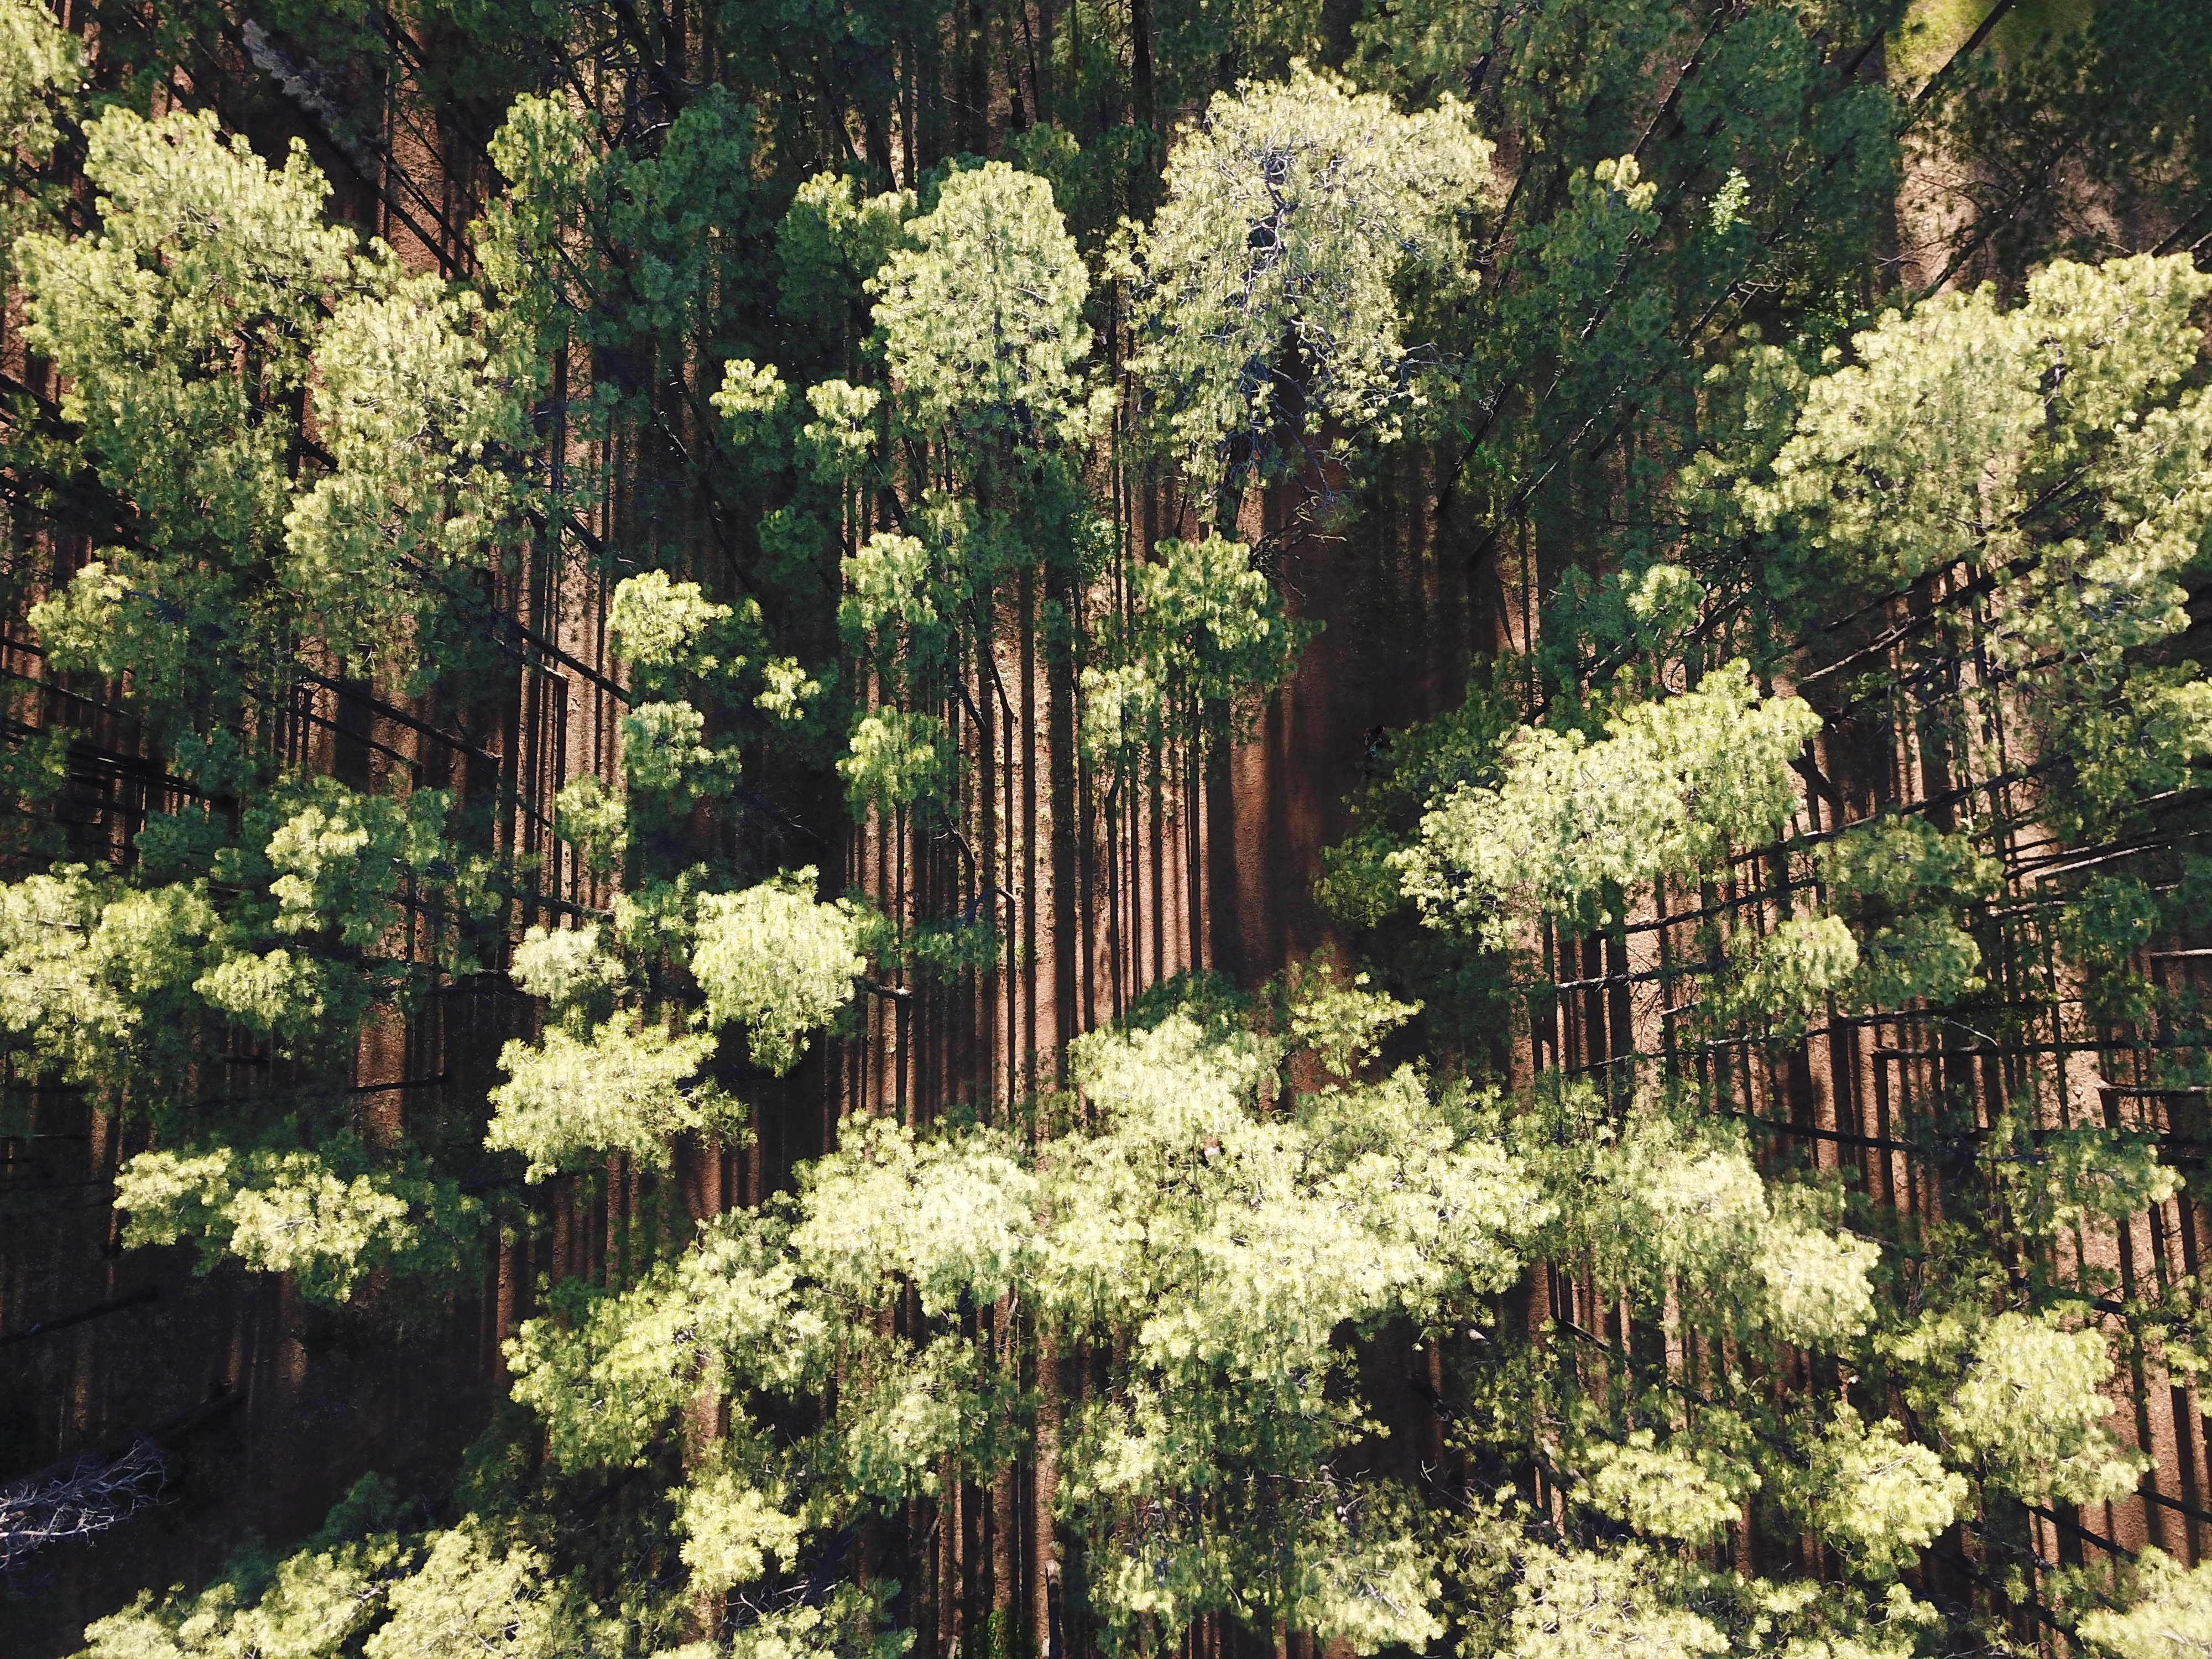 Verticle forest